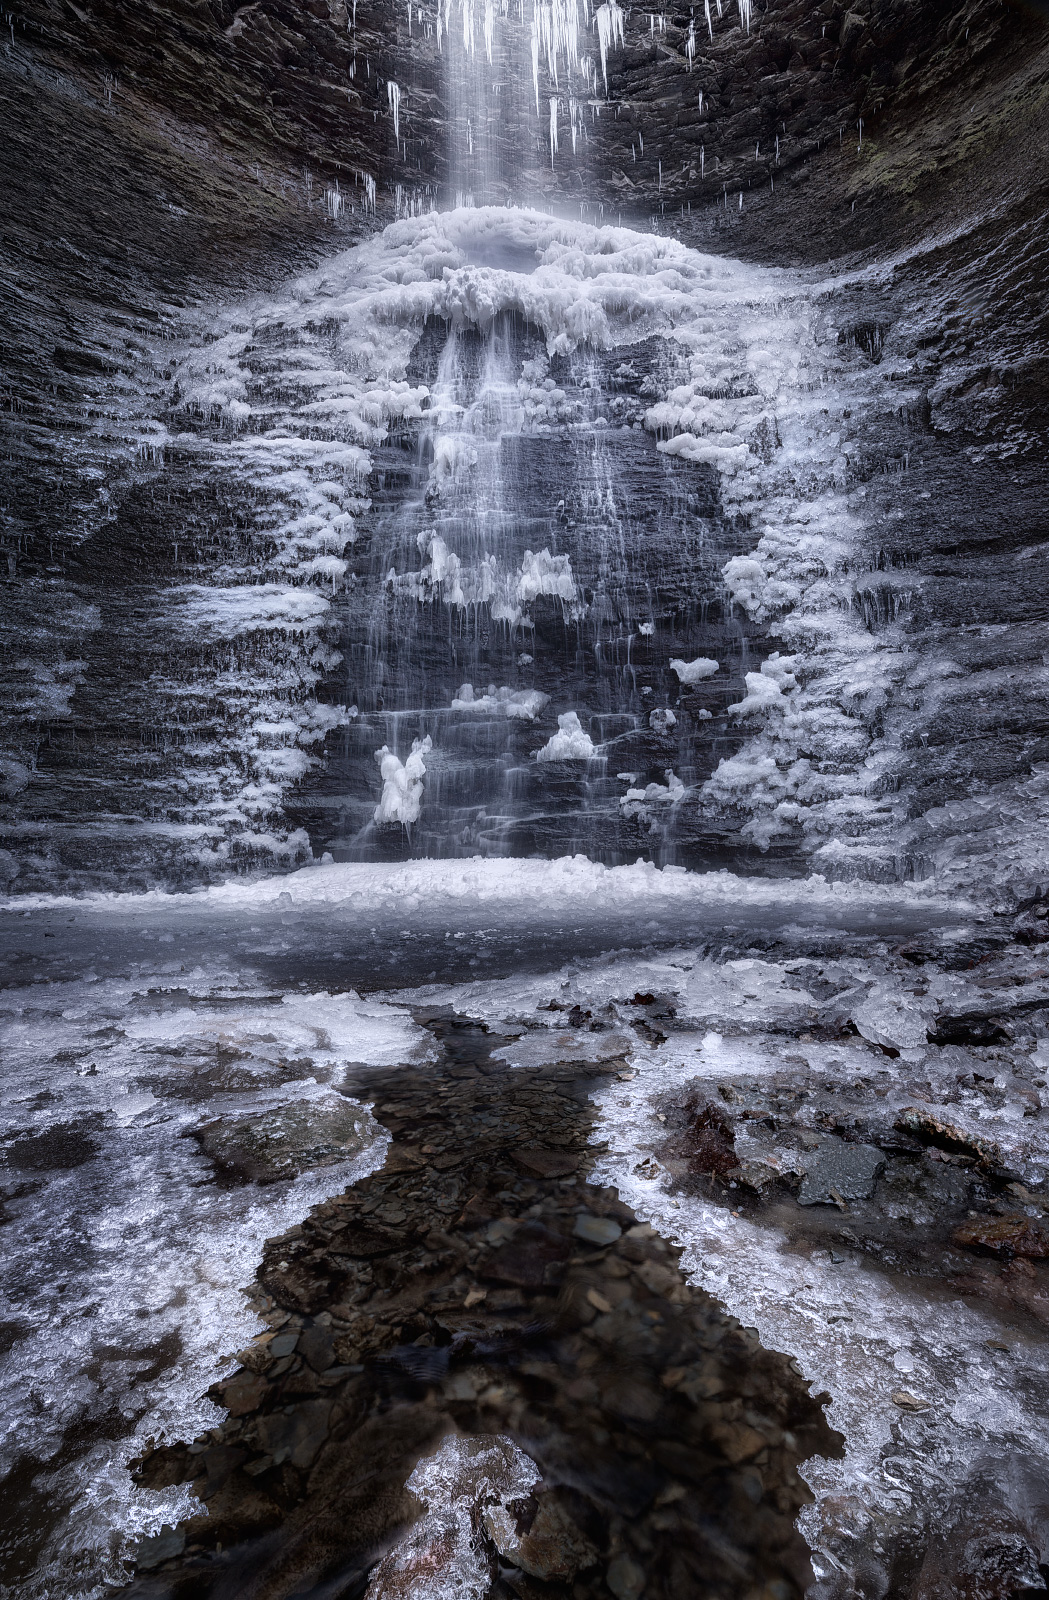 The space between the ice on the left and right of the foregroundis about 10inches. The waterfallin the upper frame is at least 70ft tall!